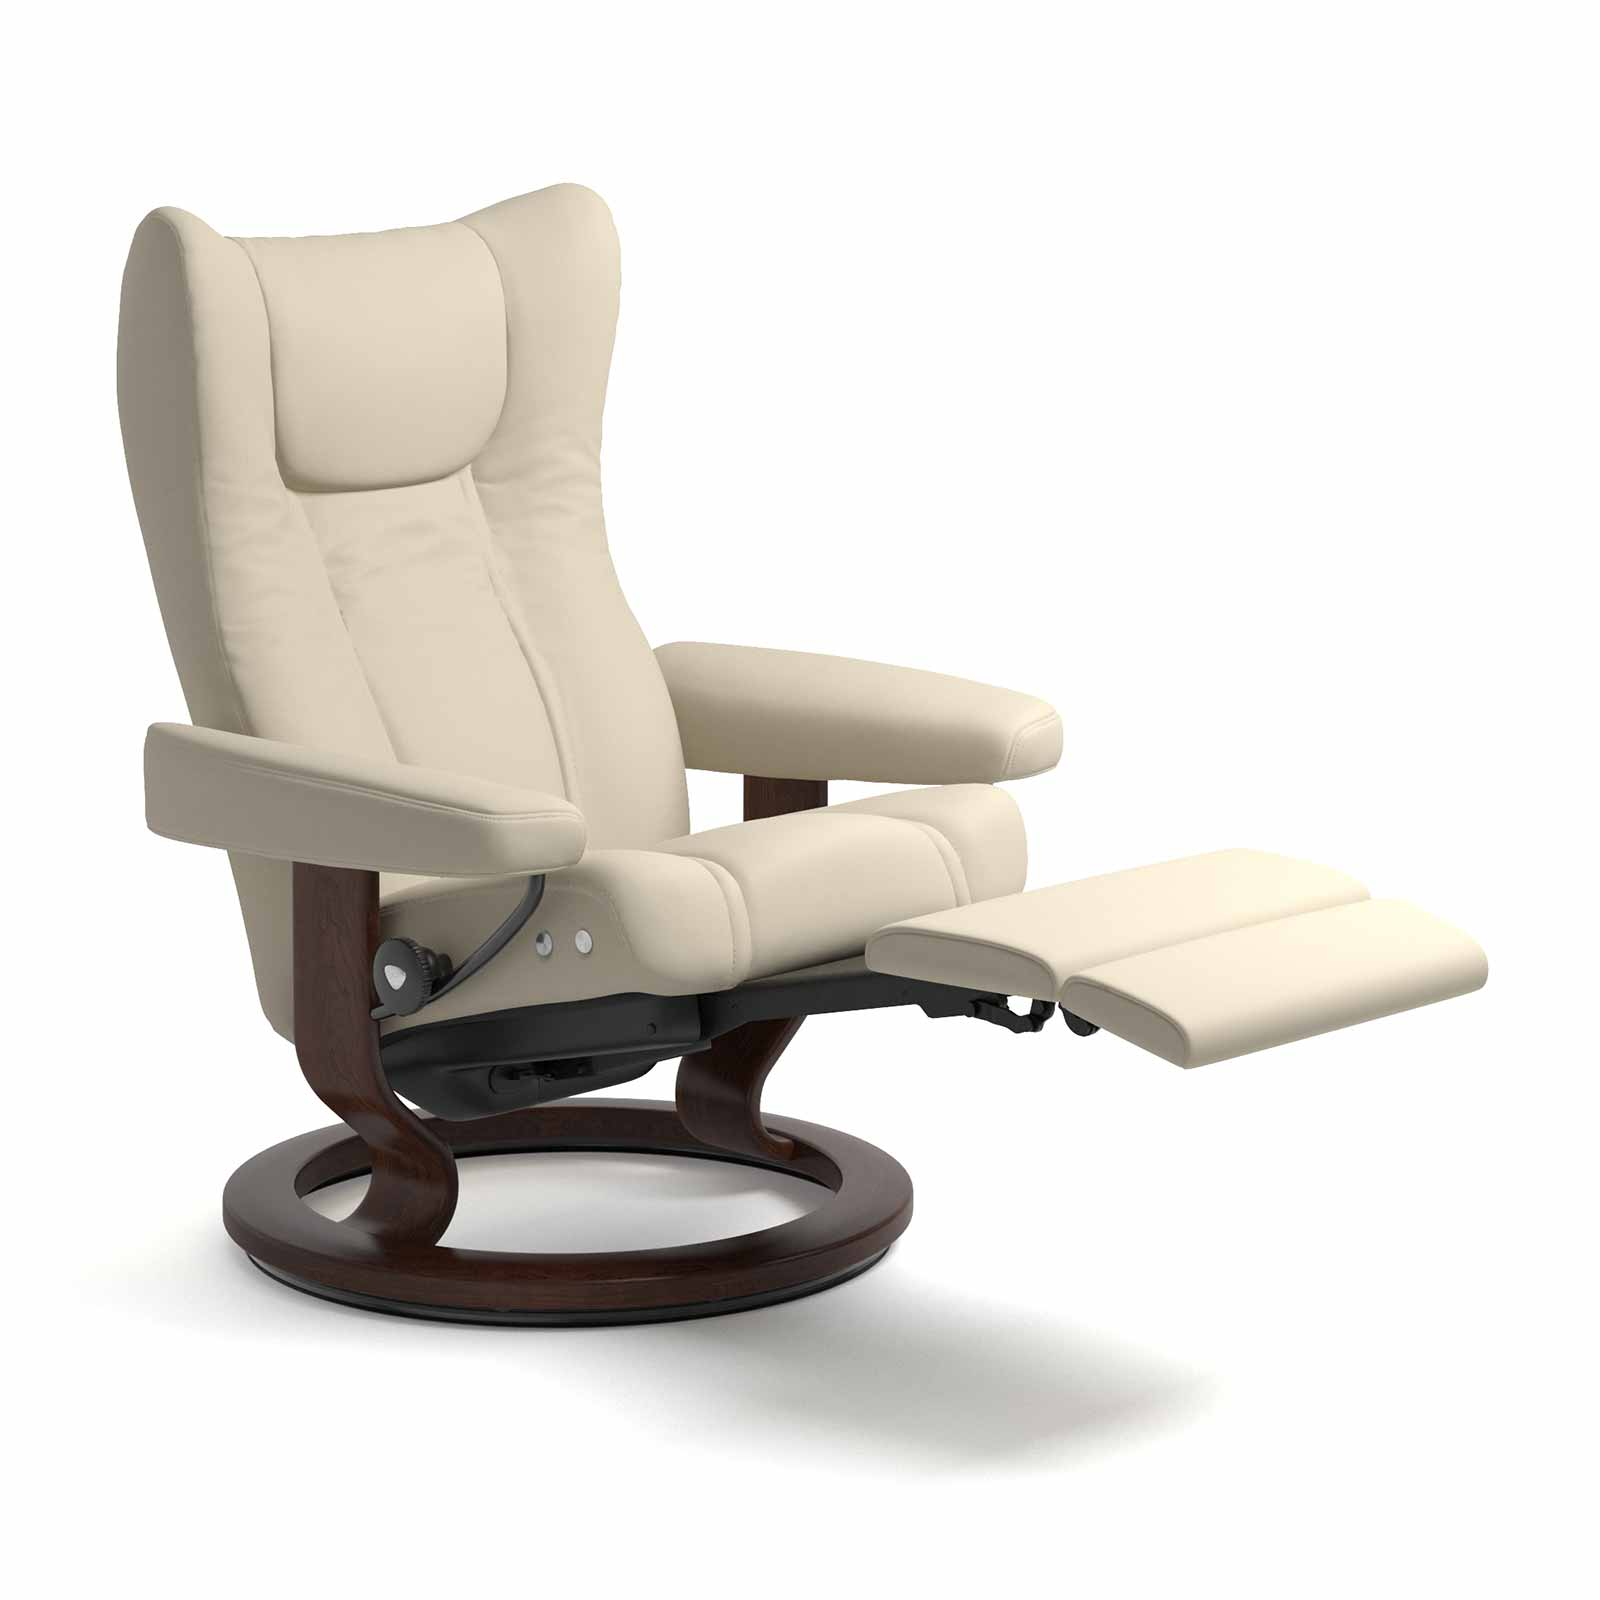 Stressless Sessel Mit Hocker Stressless City Sessel